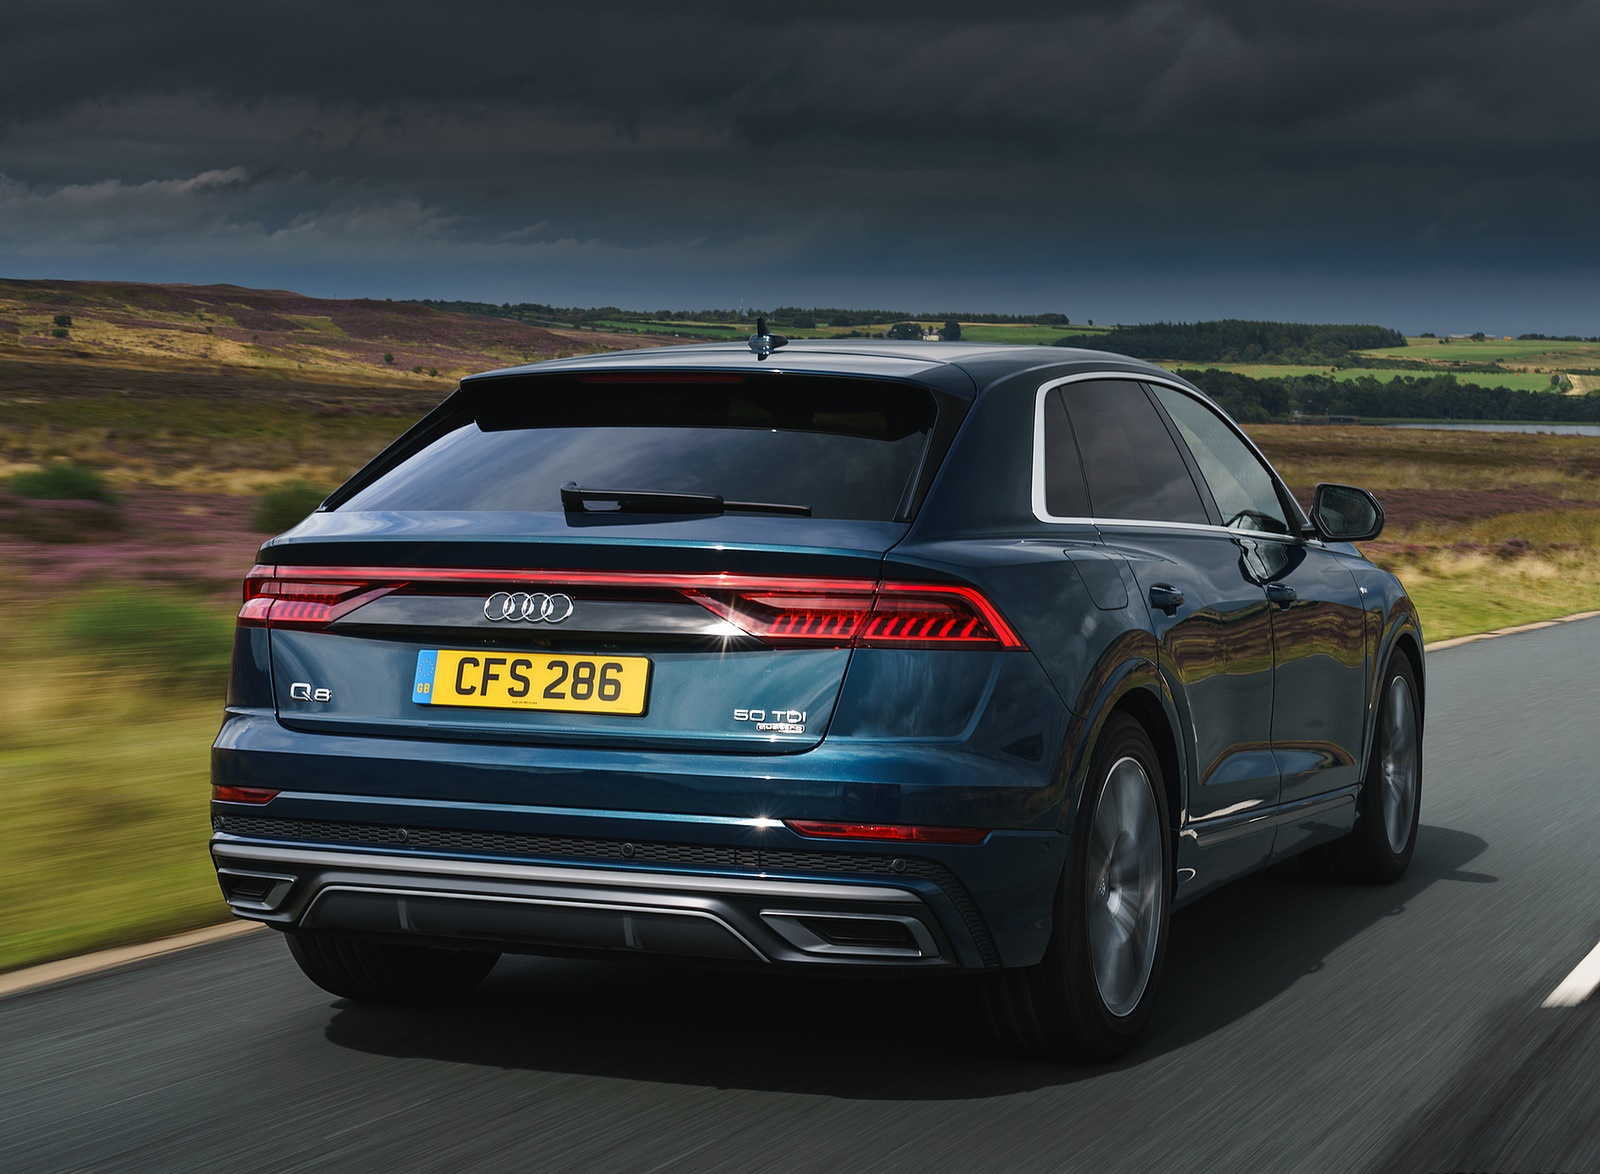 2019 Audi Q8 S Line 50 TDI Quattro (UK-Spec) Rear Three-Quarter Wallpaper (5)